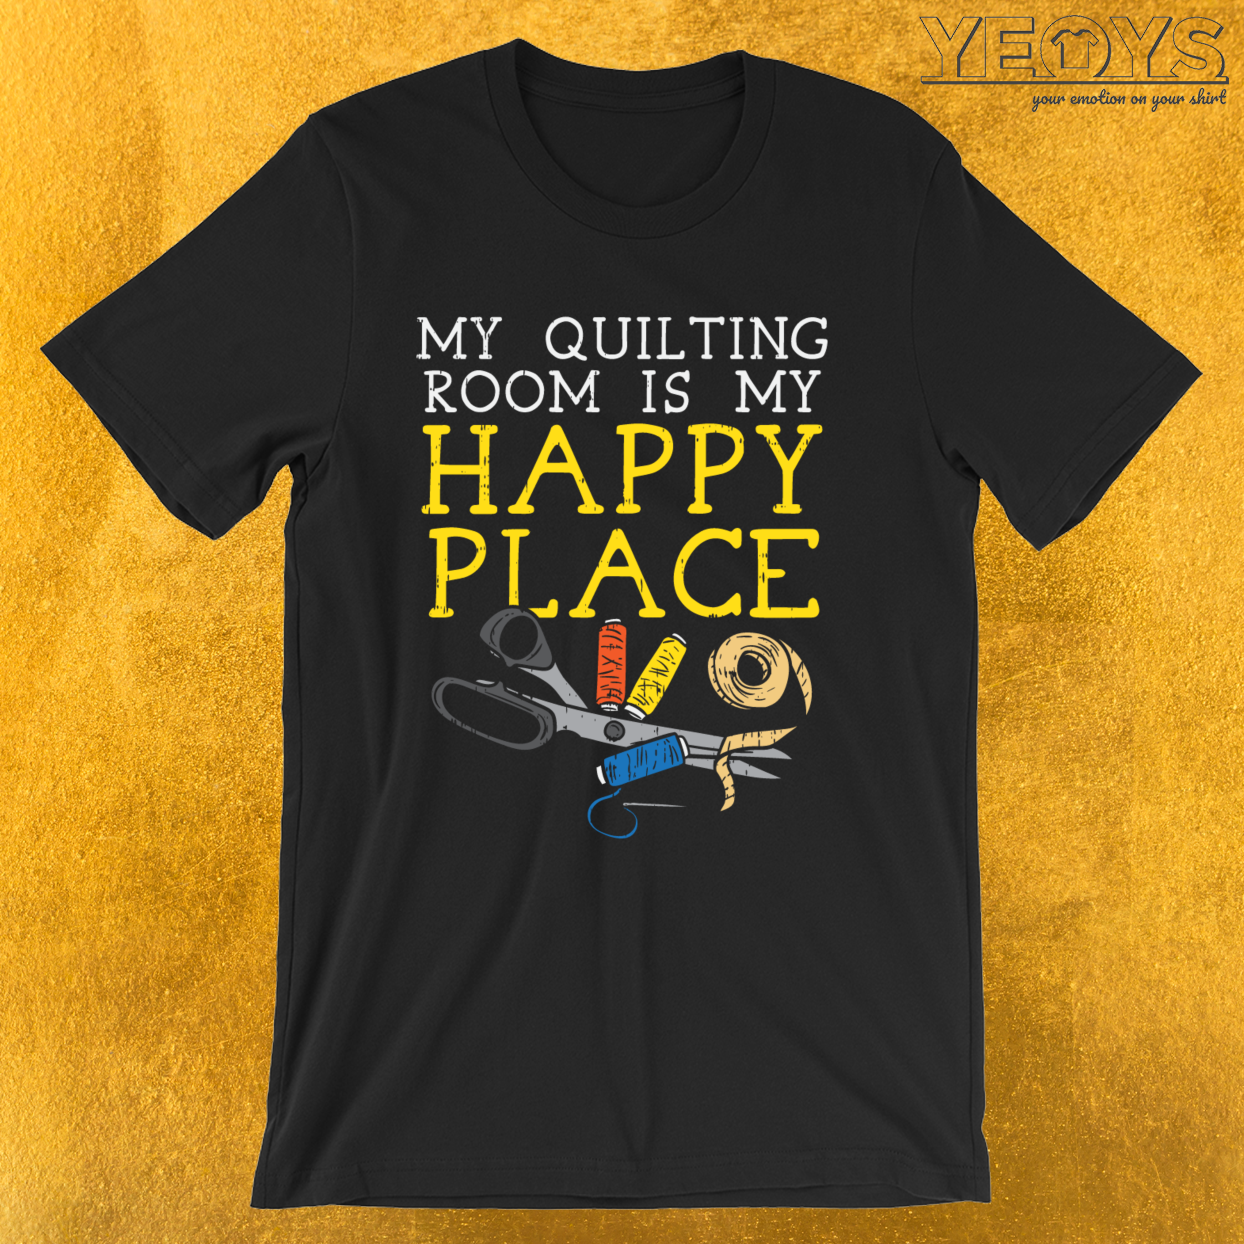 My Quilting Room Is My Happy Place – Quilting Tee